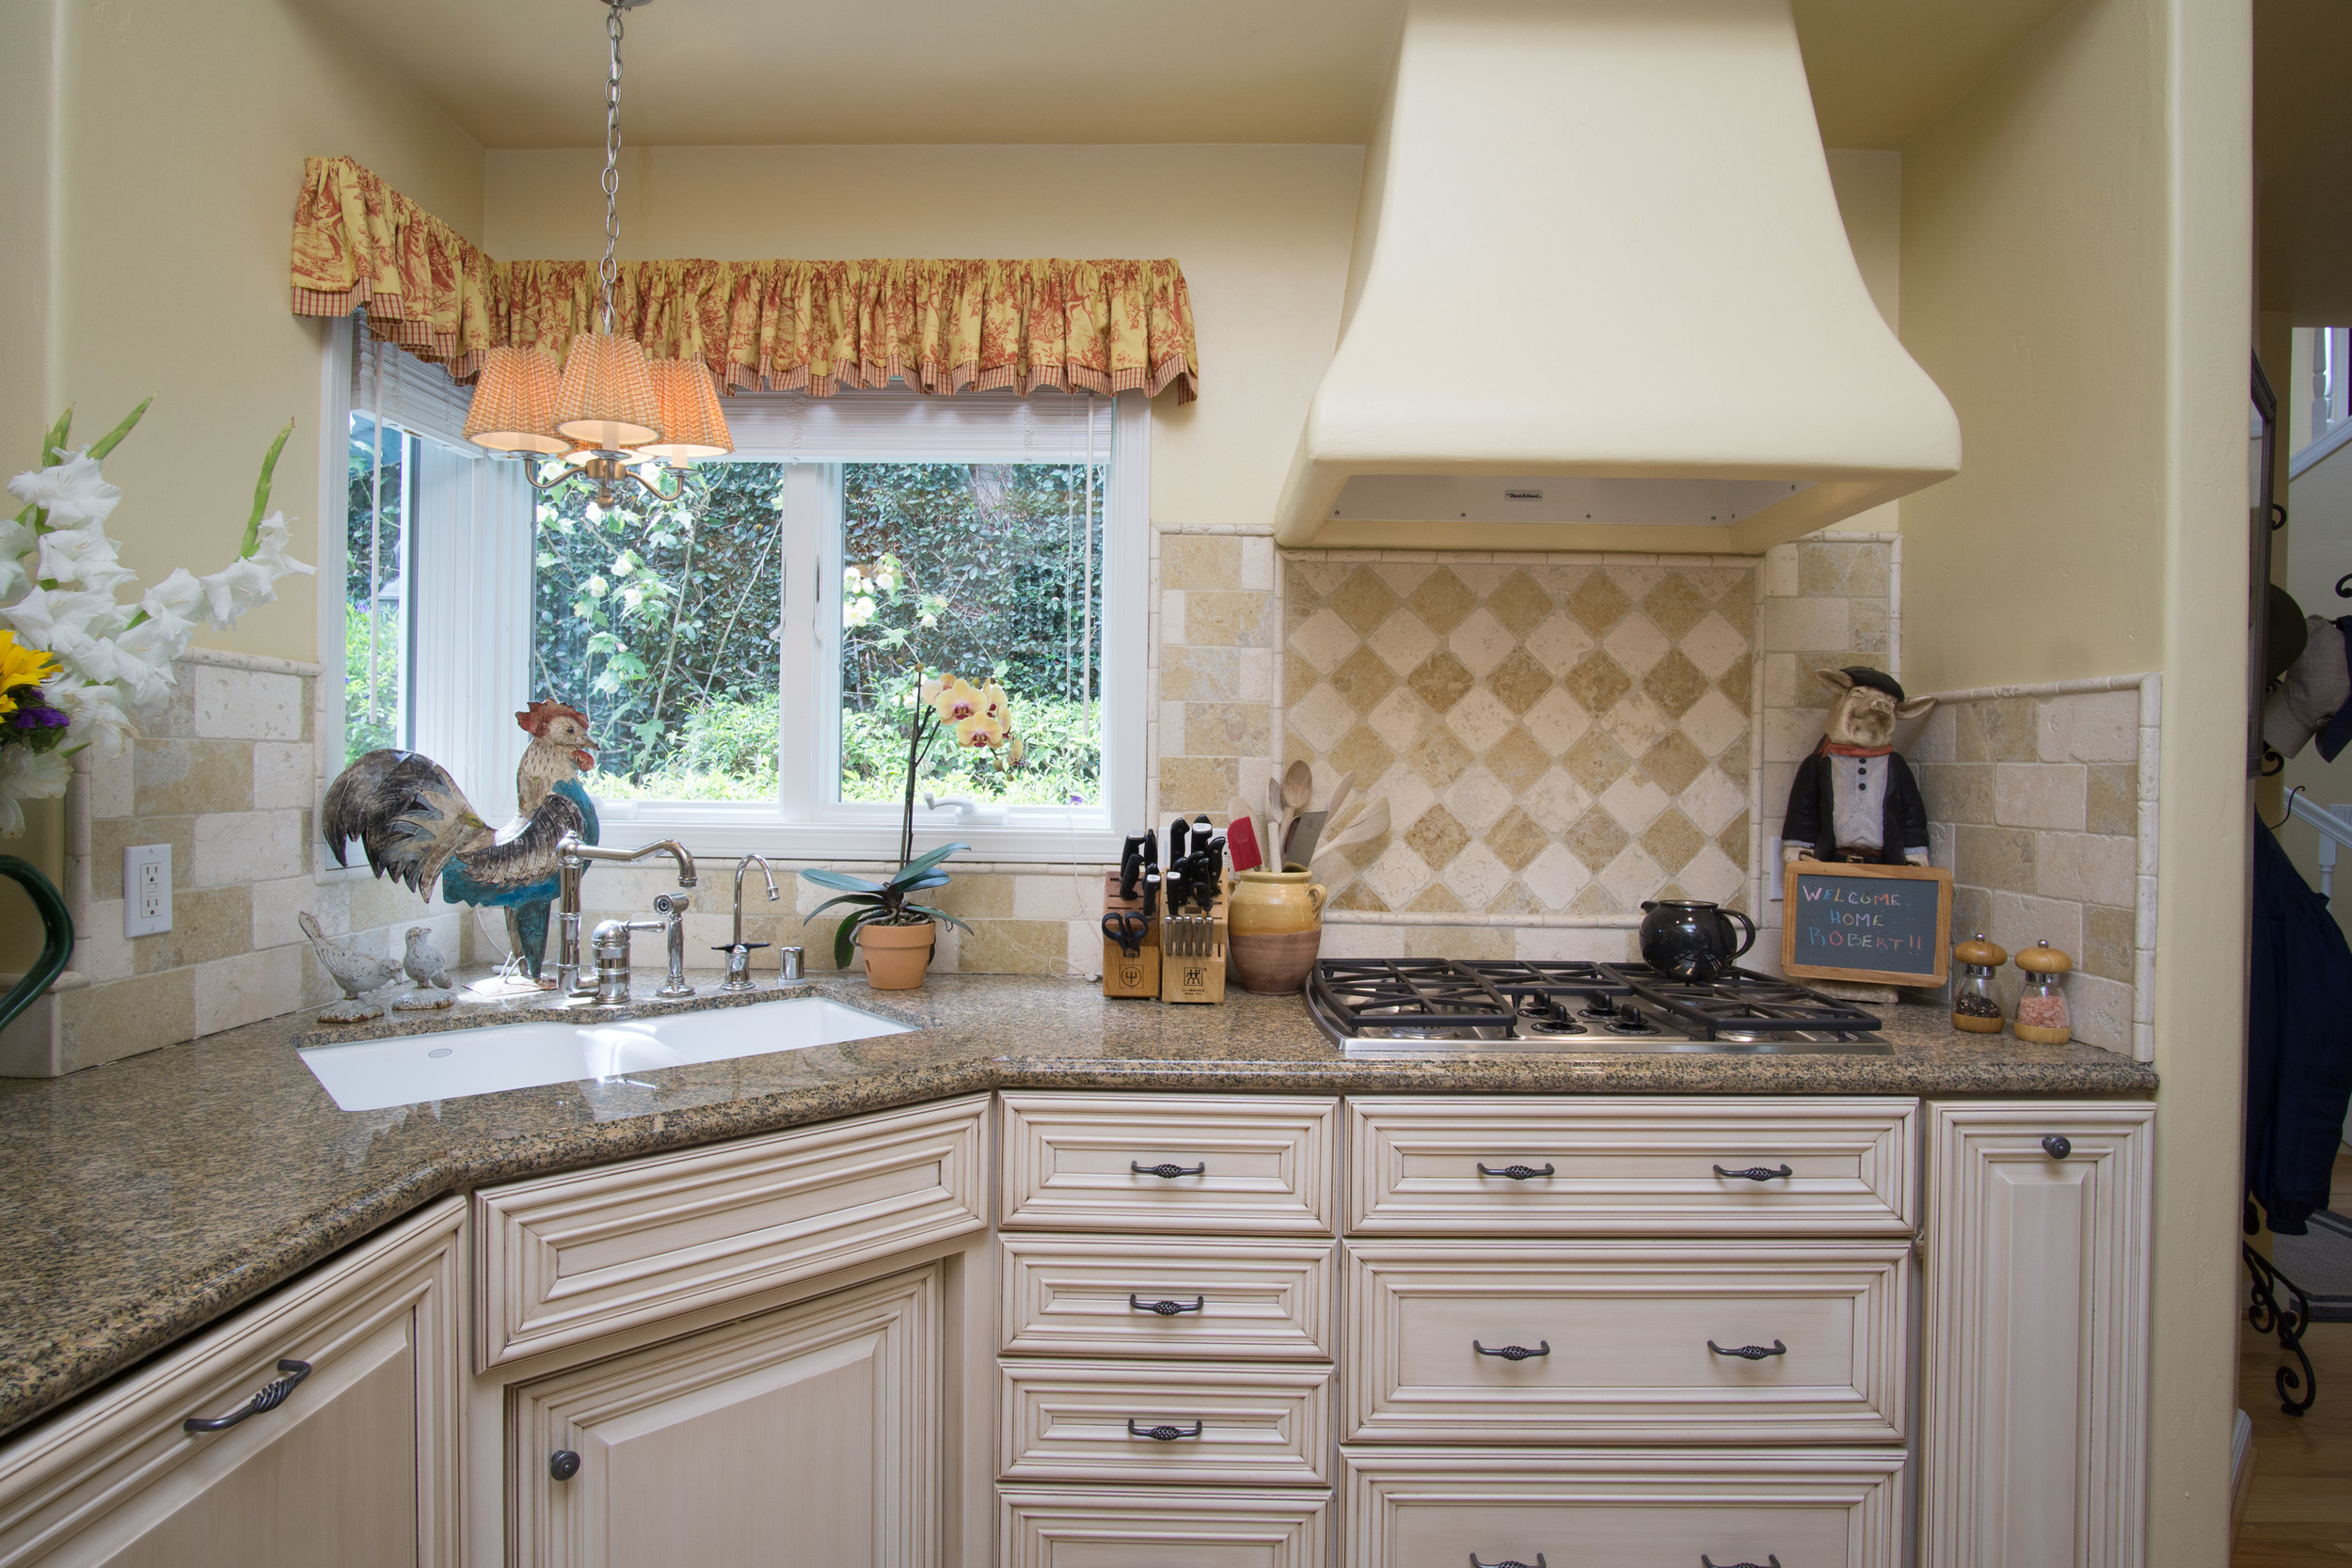 Torres11th-int-kitchen4.jpg